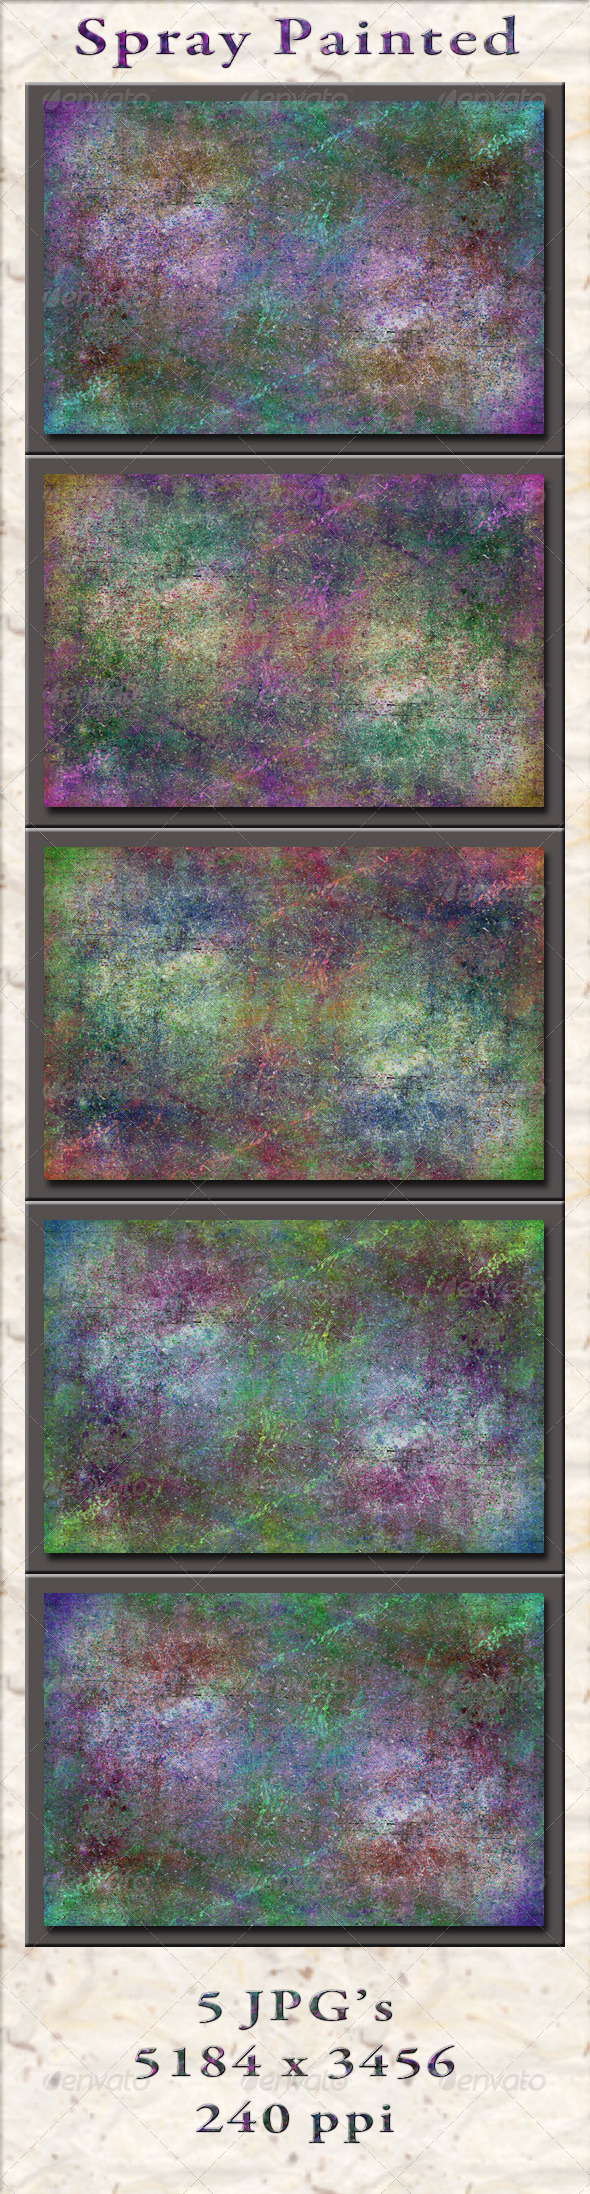 GraphicRiver Spray Painted Textures 5567886